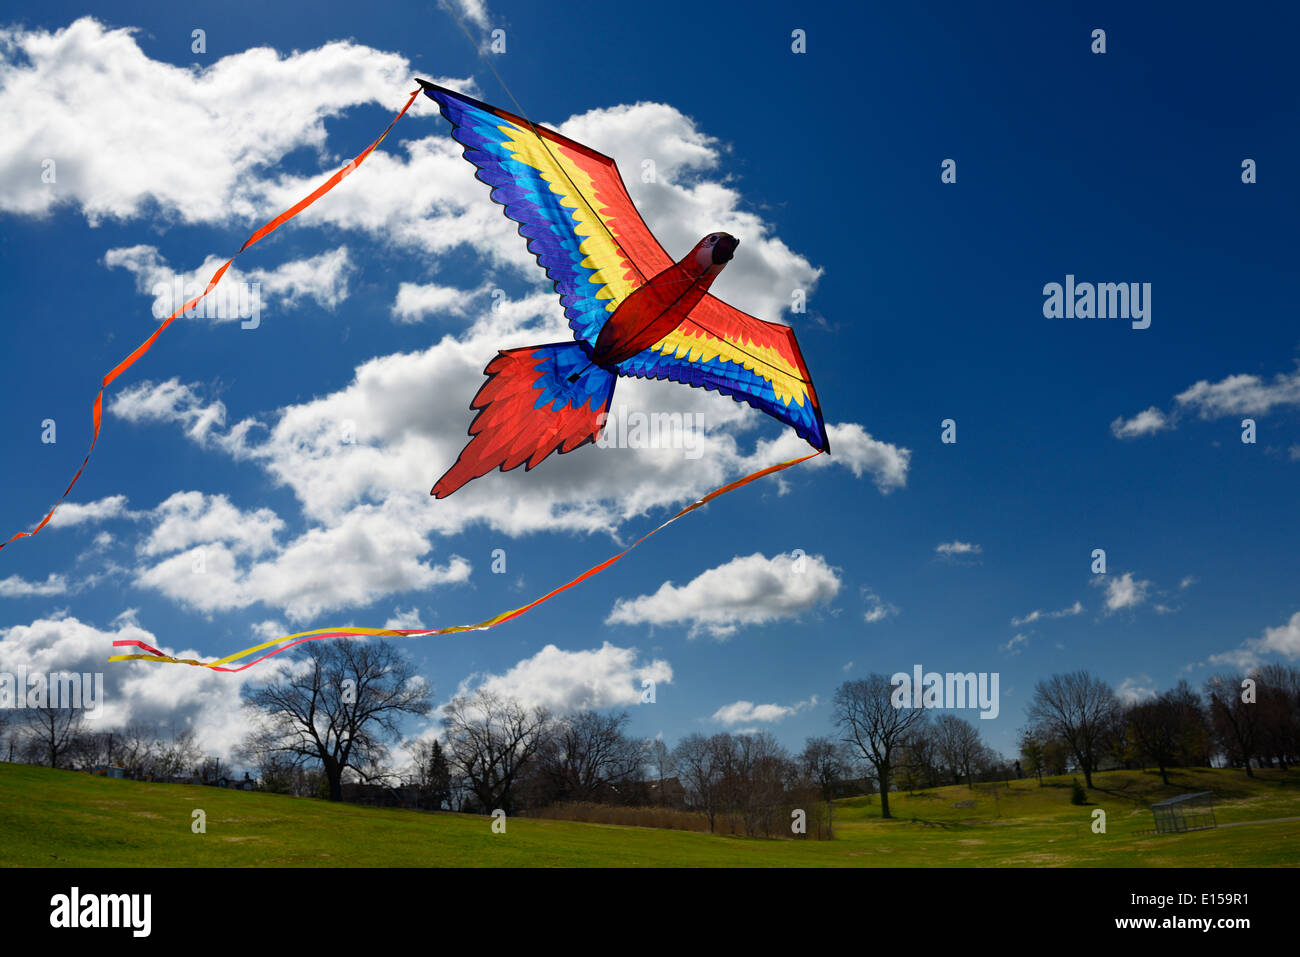 Macaw Parrot Kite flying against a blue sky in spring at Riverdale Park Toronto - Stock Image